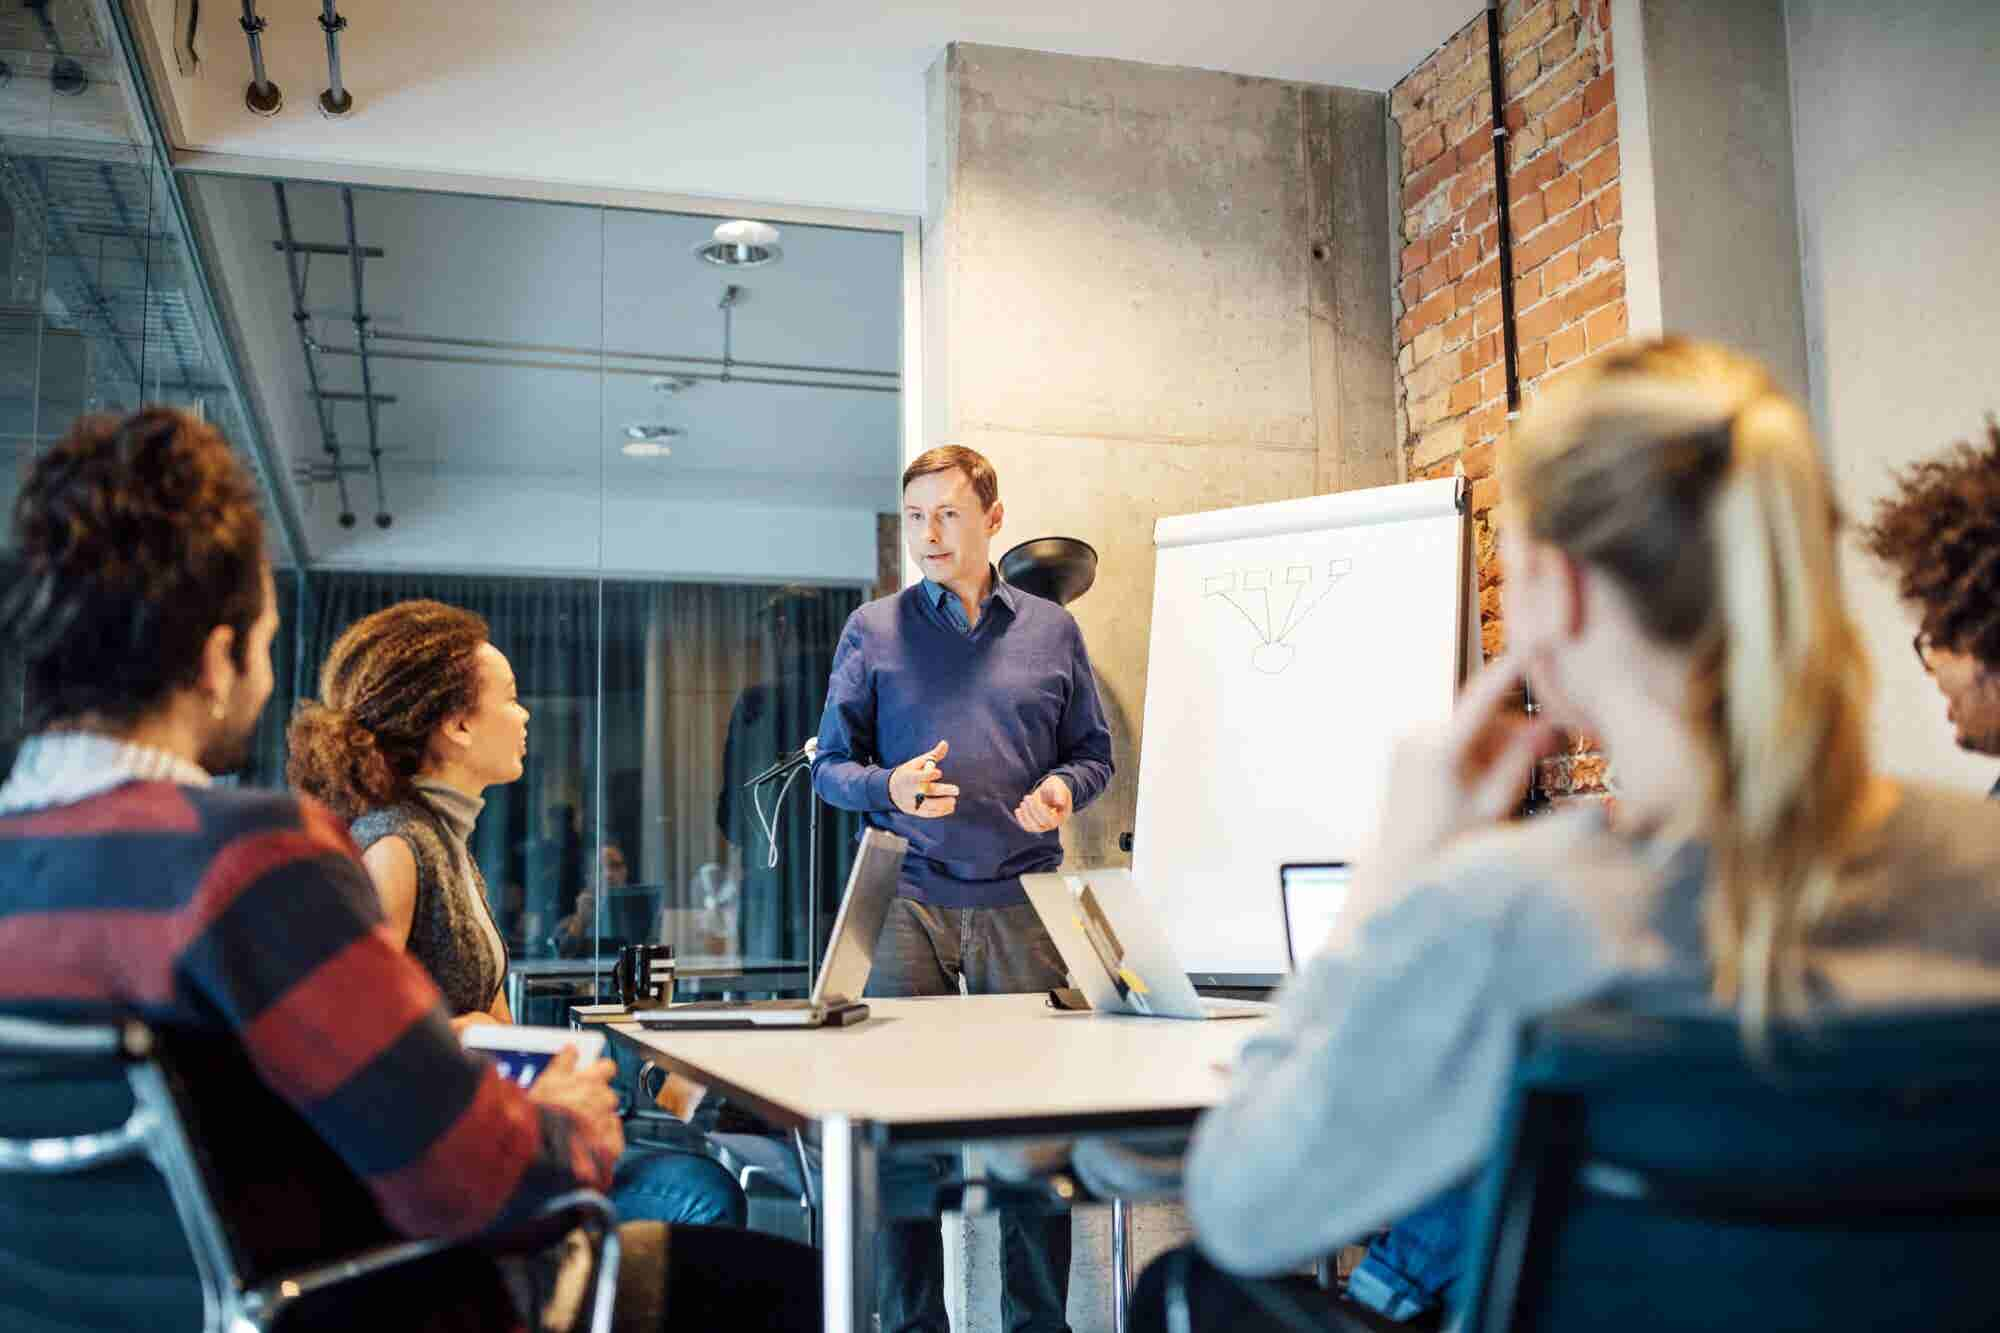 3 Previously Unimaginable Projects Your Startup Team Could Deploy With an Agile Approach